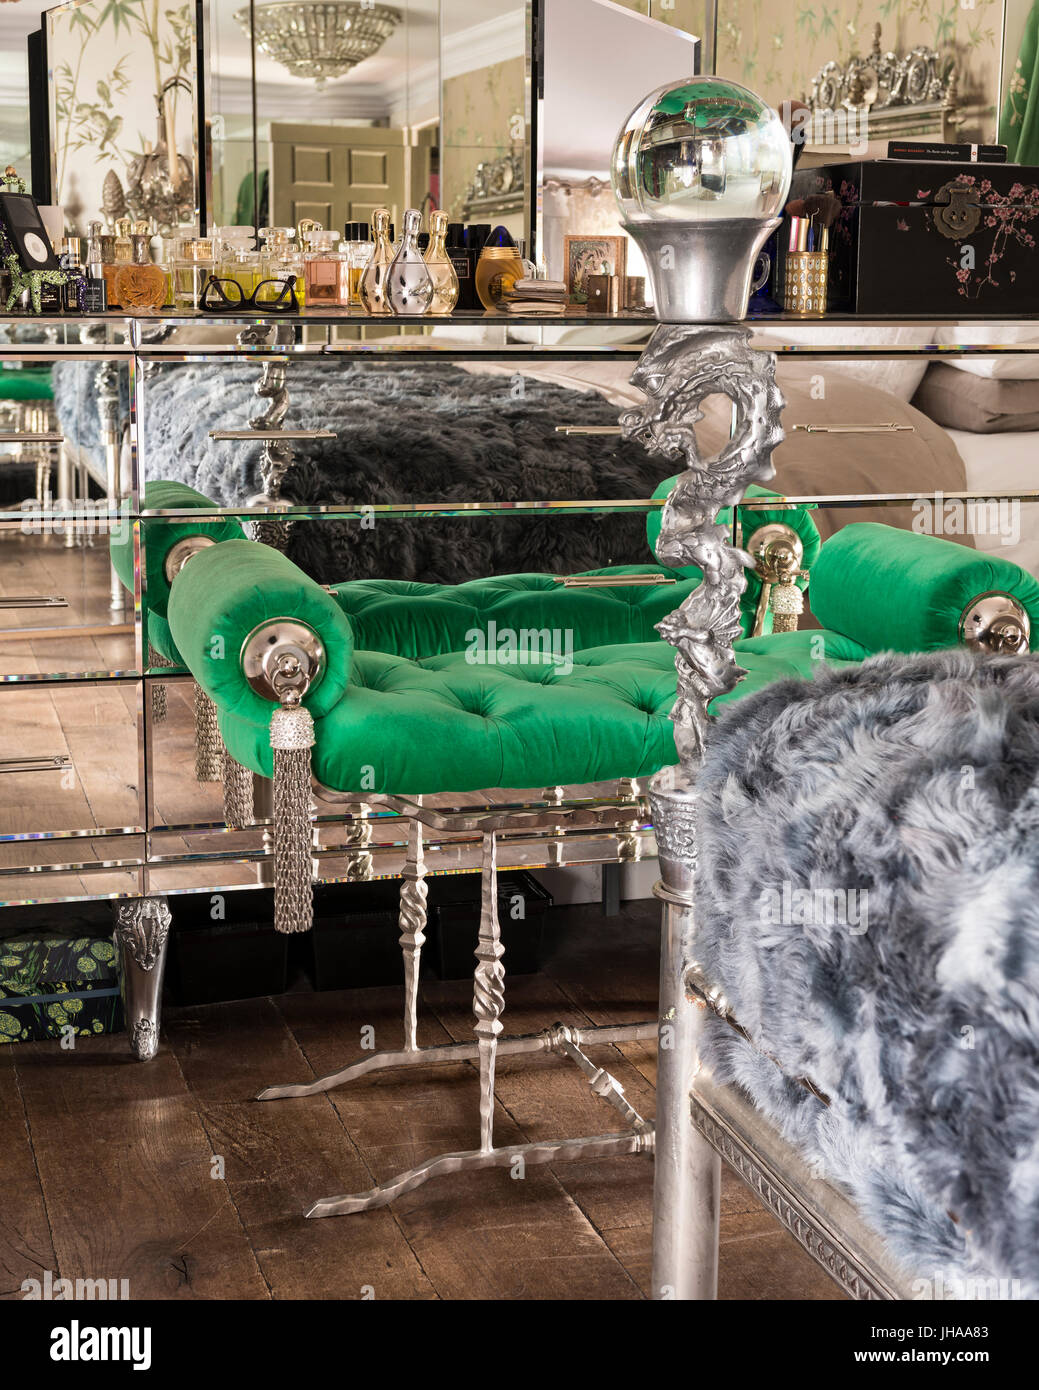 Green stool by mirrored drawers - Stock Image